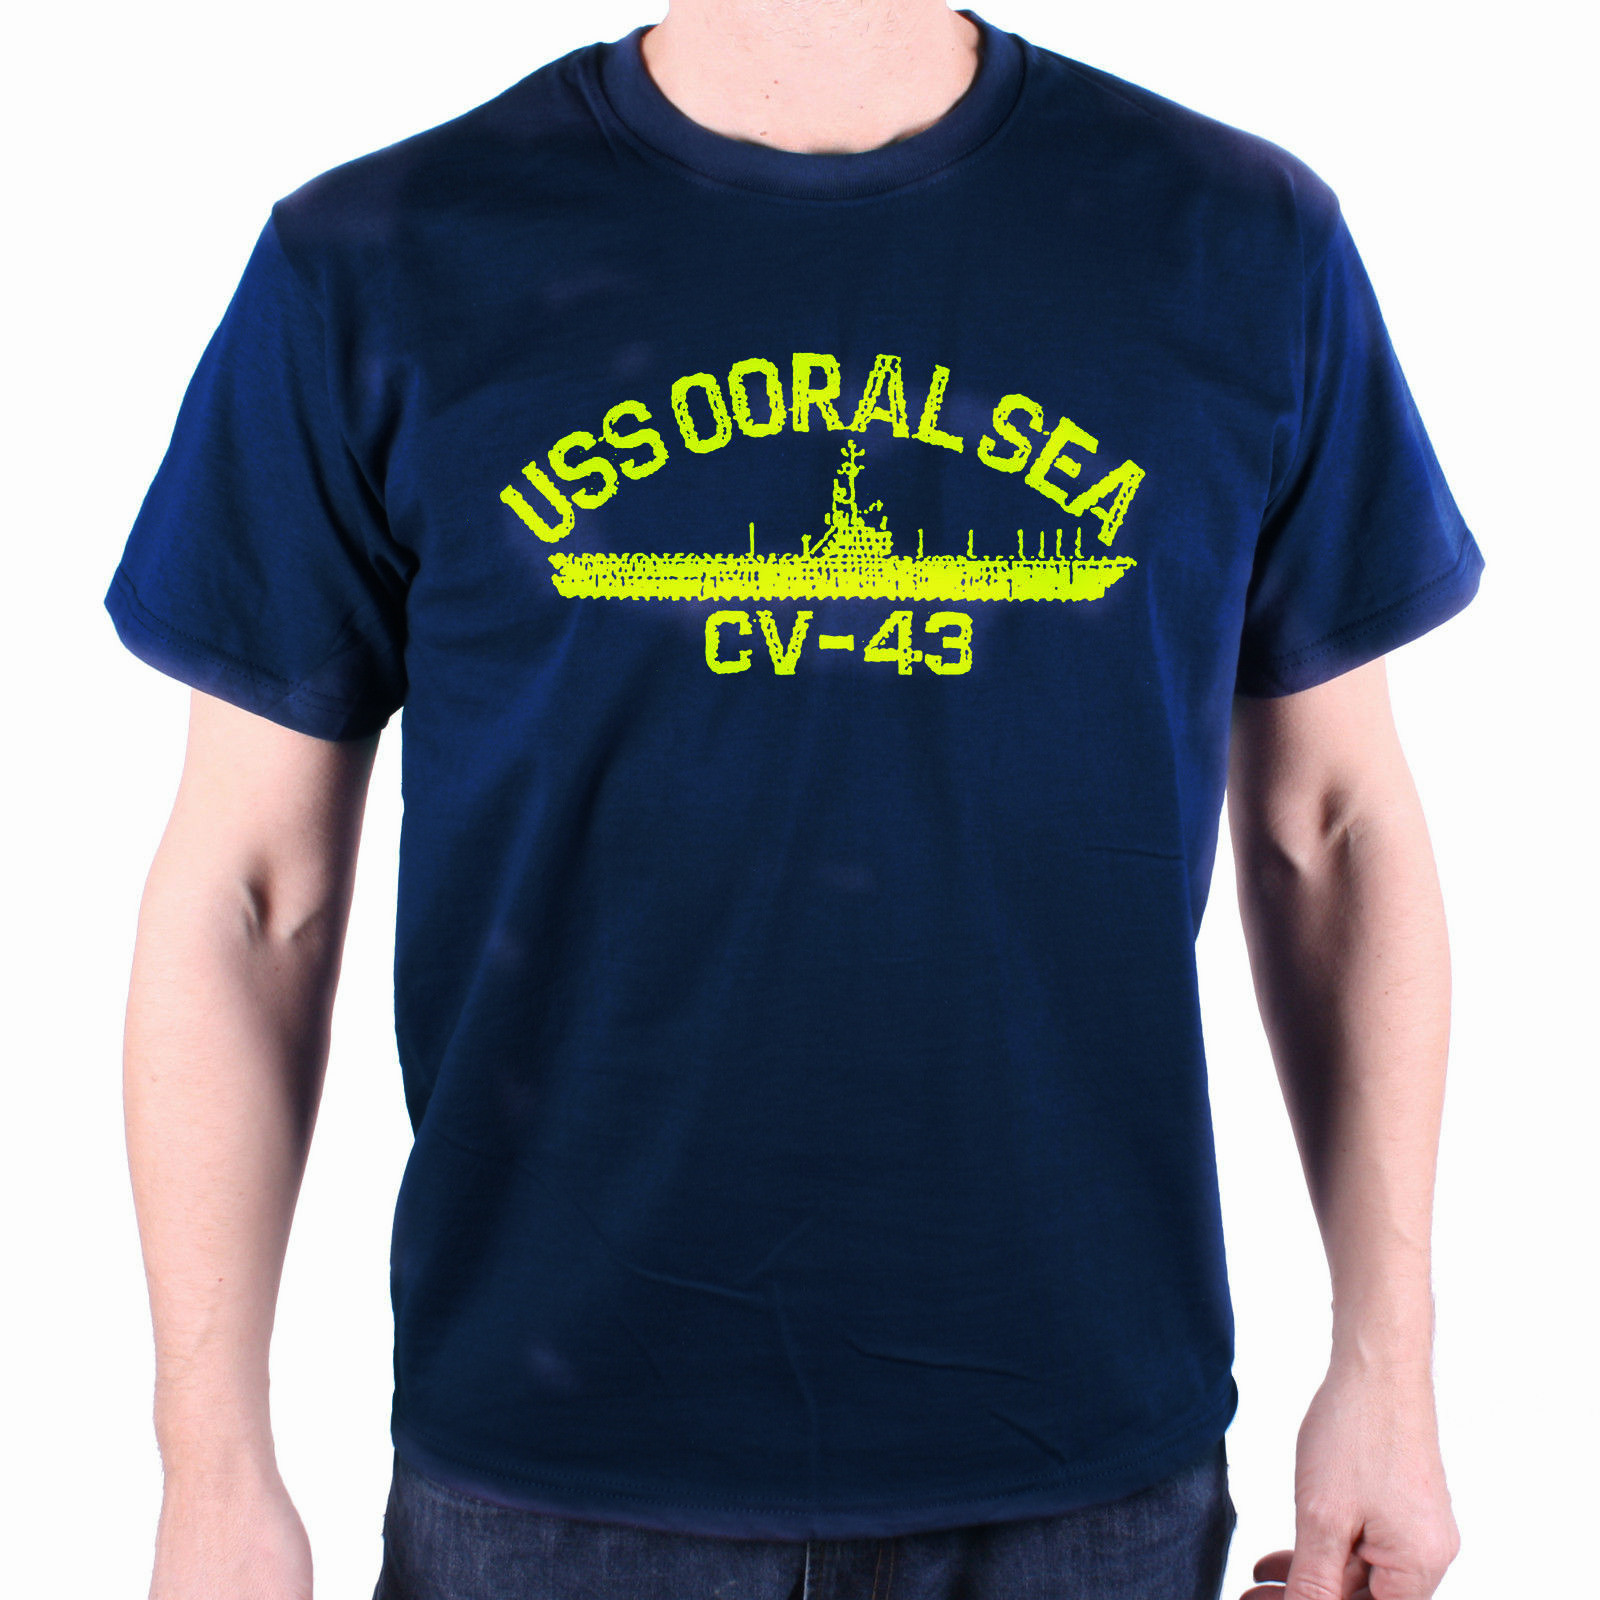 New USS Ooral Sea CV-43 Cult Movie T Shirt S-3XL image